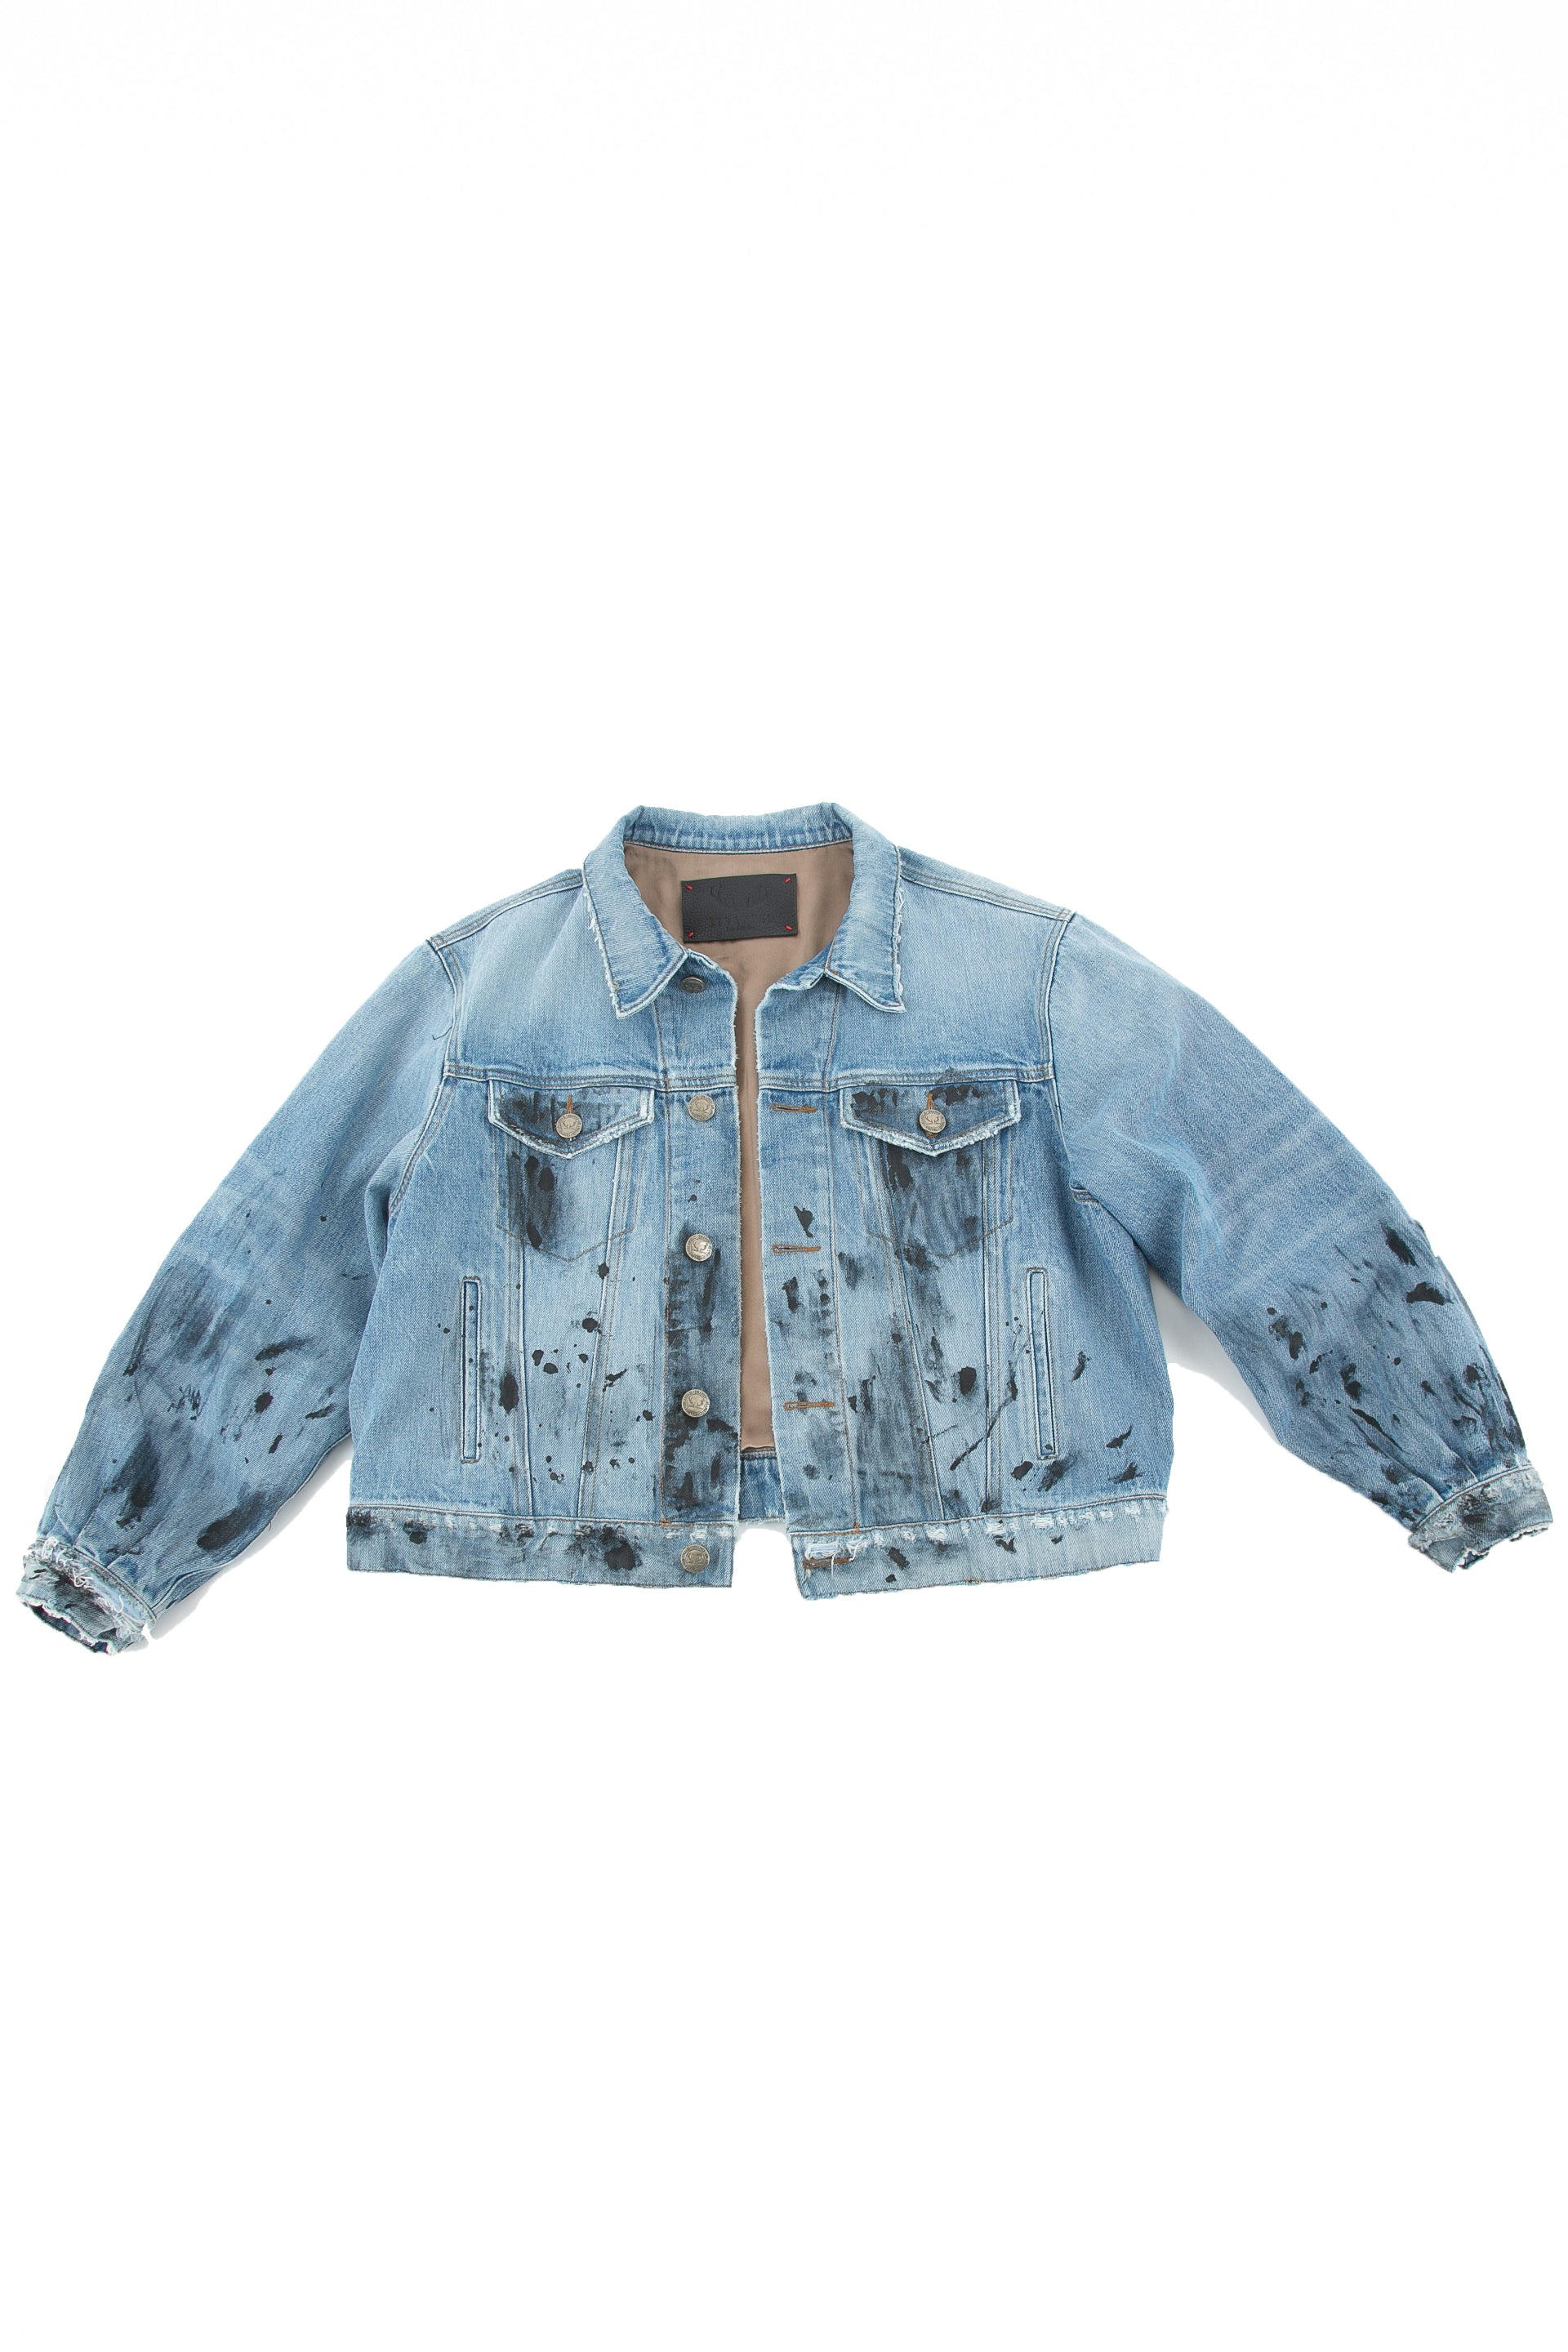 Front of Roofers Denim jacket